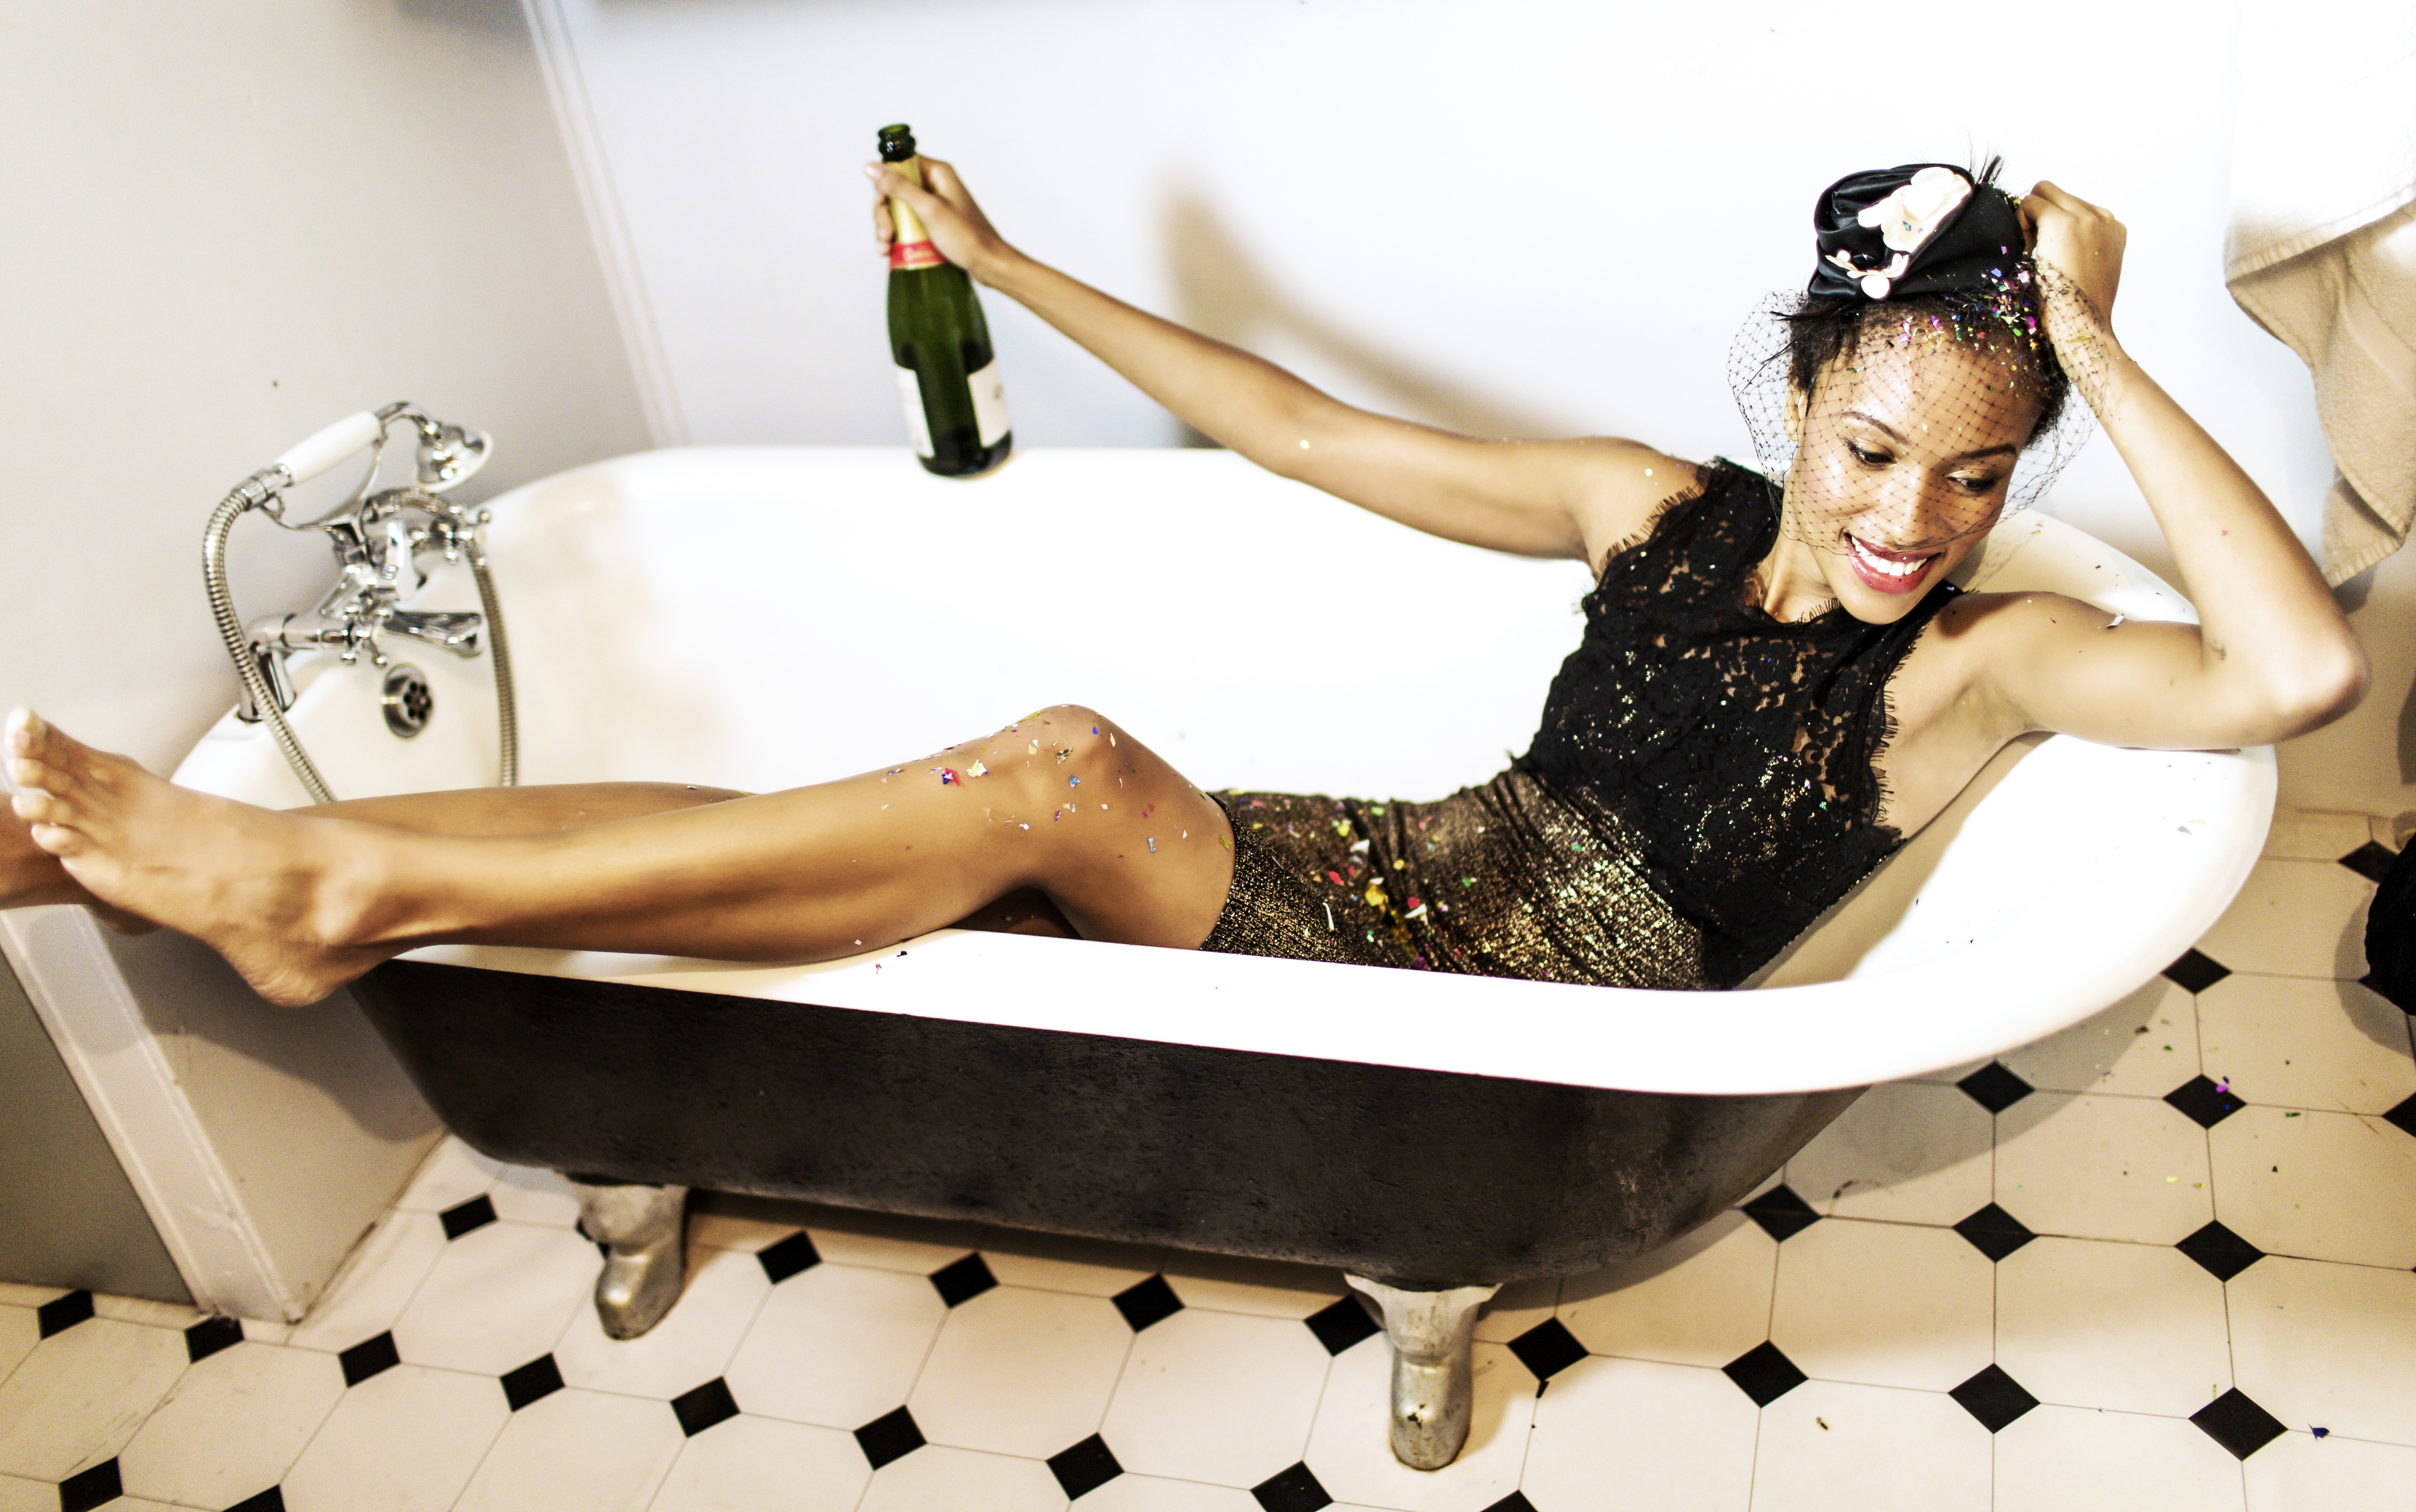 A woman in a little black dress holds a bottle of champagne while lying in an empty bath tub.